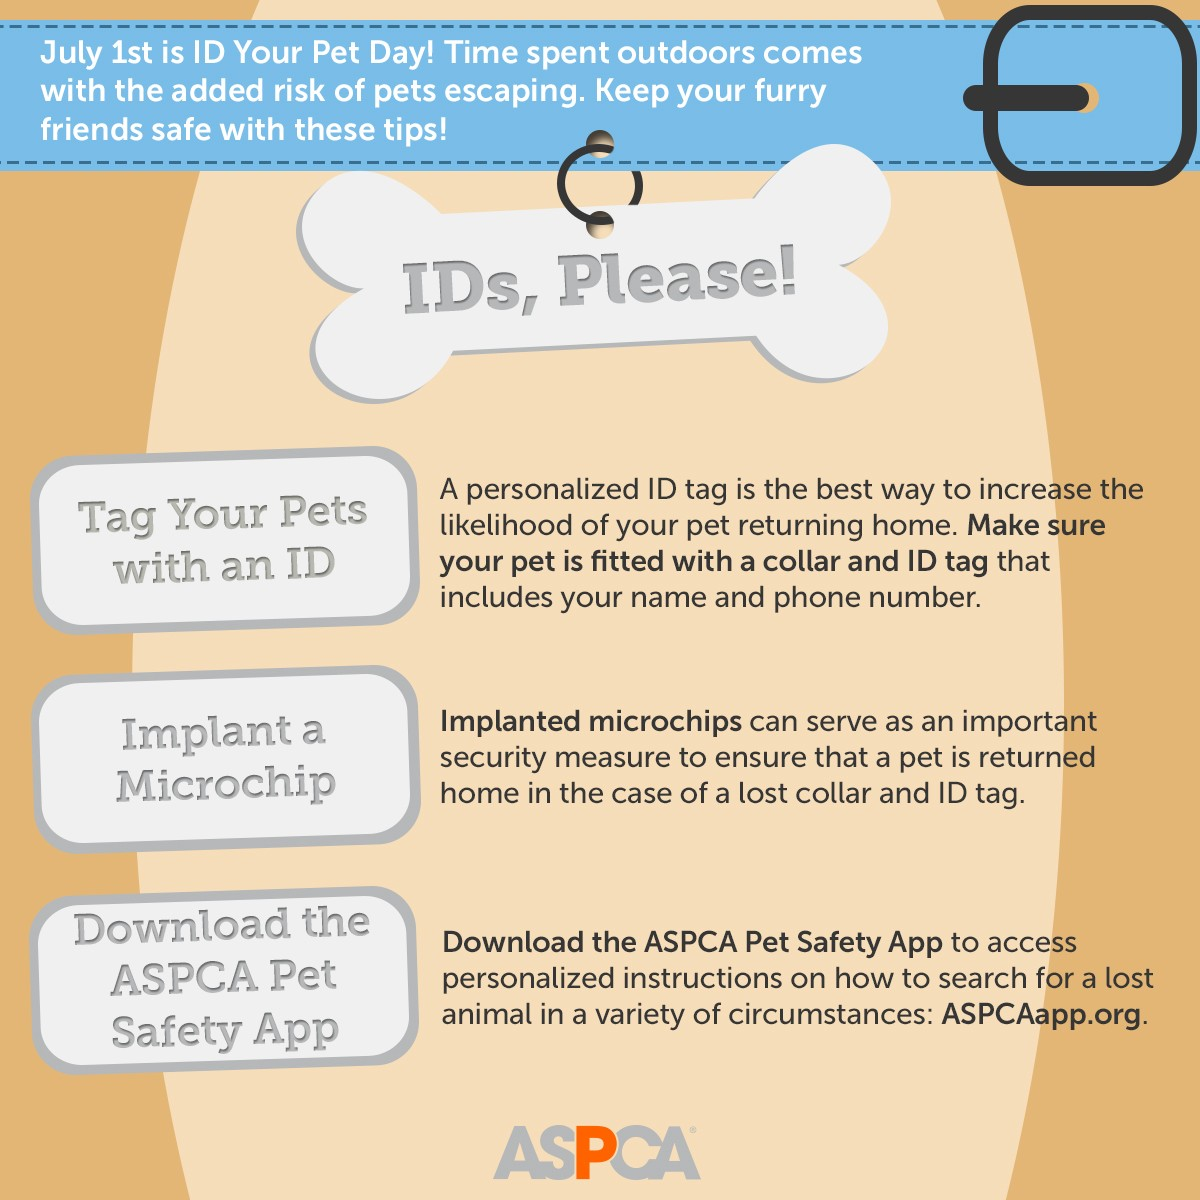 ASPCA ID Your Pet Day